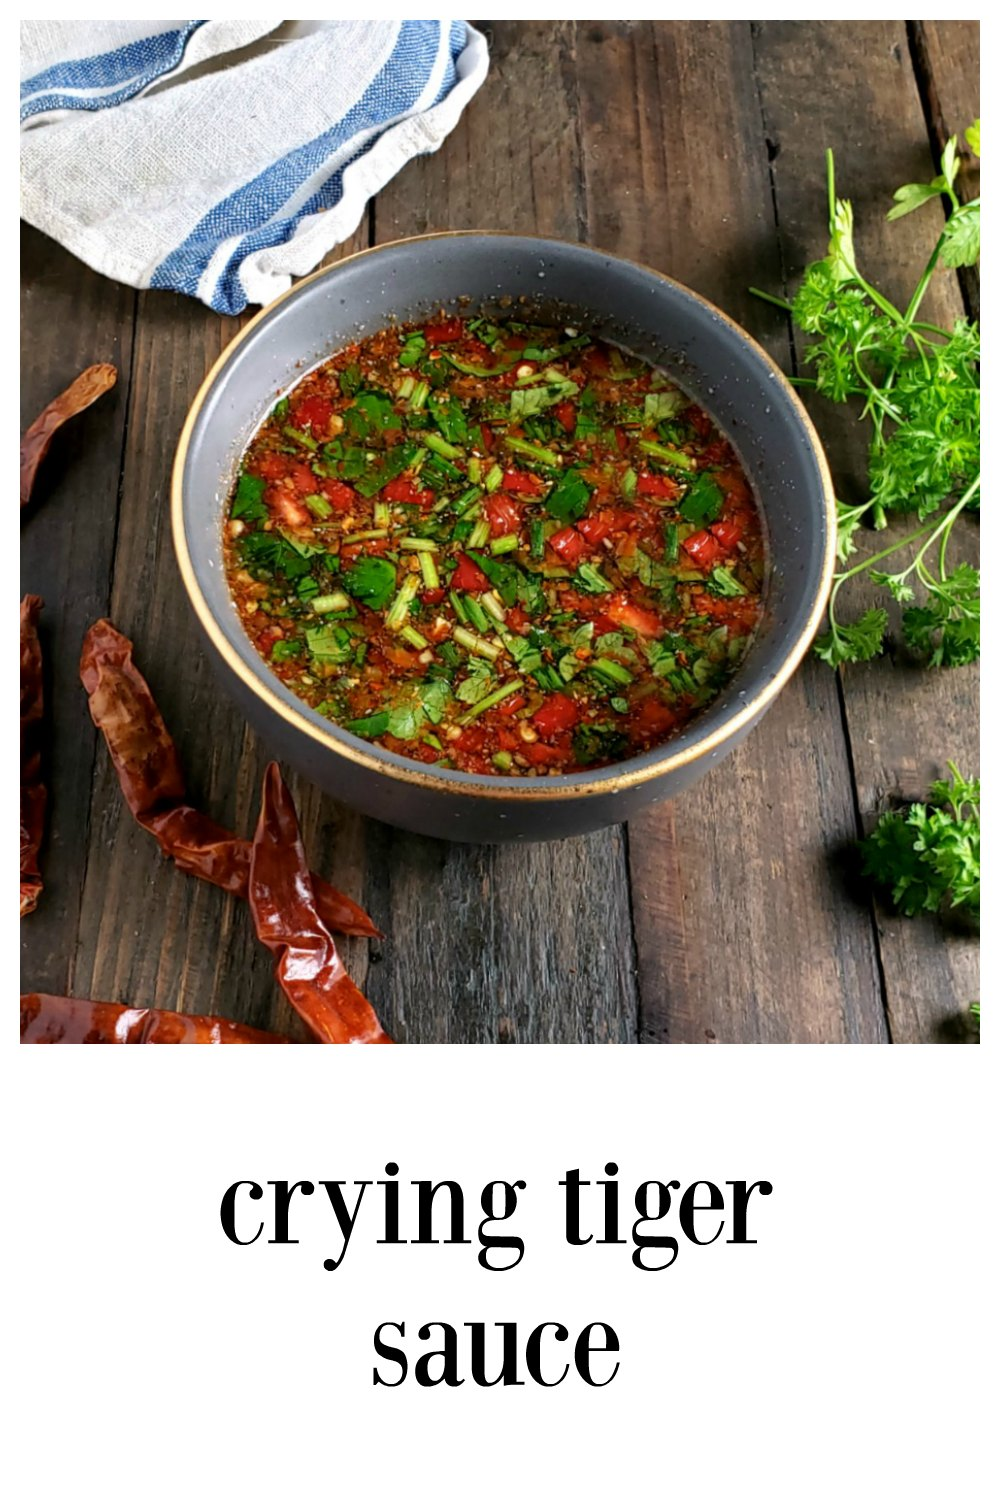 Crying Tiger Sauce is a fiery Thai or Southeastern Asian dipping sauce. Perfect any grilled beef, chicken, pork. 10 minutes to make! #AsianSauce #CryingTigerSauce #ThaiRecipes #CrySauce #NamchimChaeo